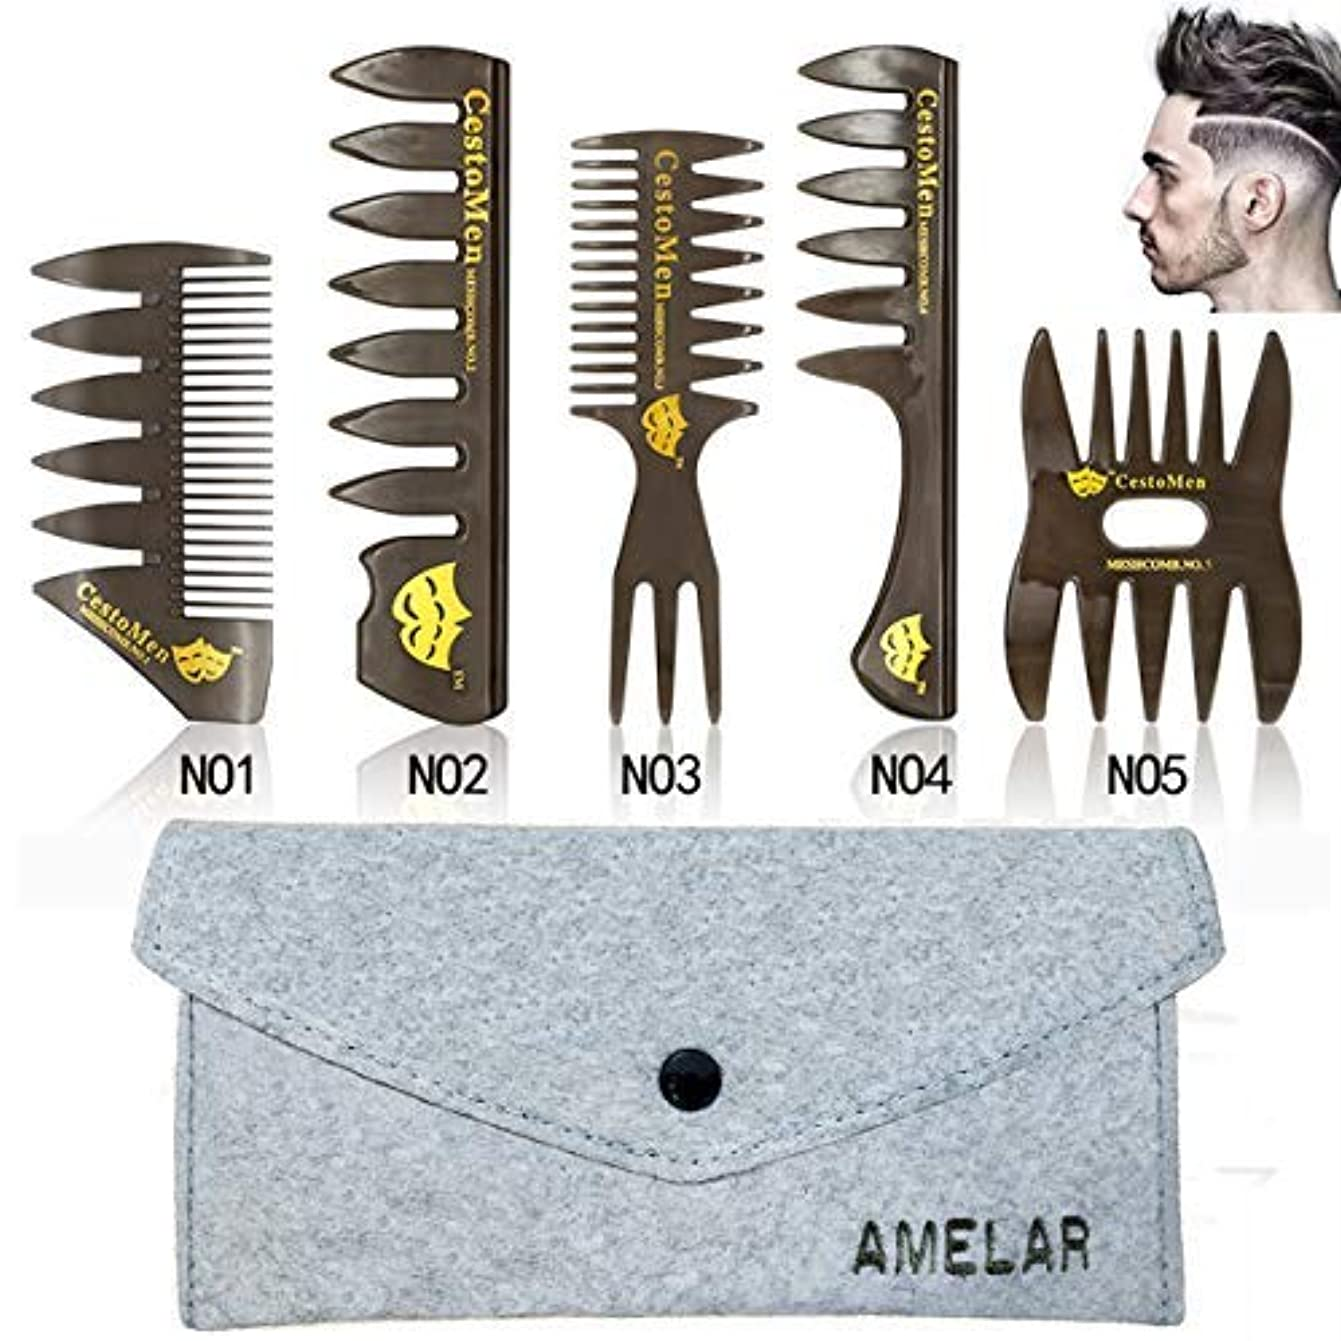 精通したカウボーイ誇張6 PCS Hair Comb Styling Set Barber Hairstylist Accessories,Professional Shaping & Wet Pick Barber Brush Tools, Anti-Static Hair Brush for Men Boys [並行輸入品]